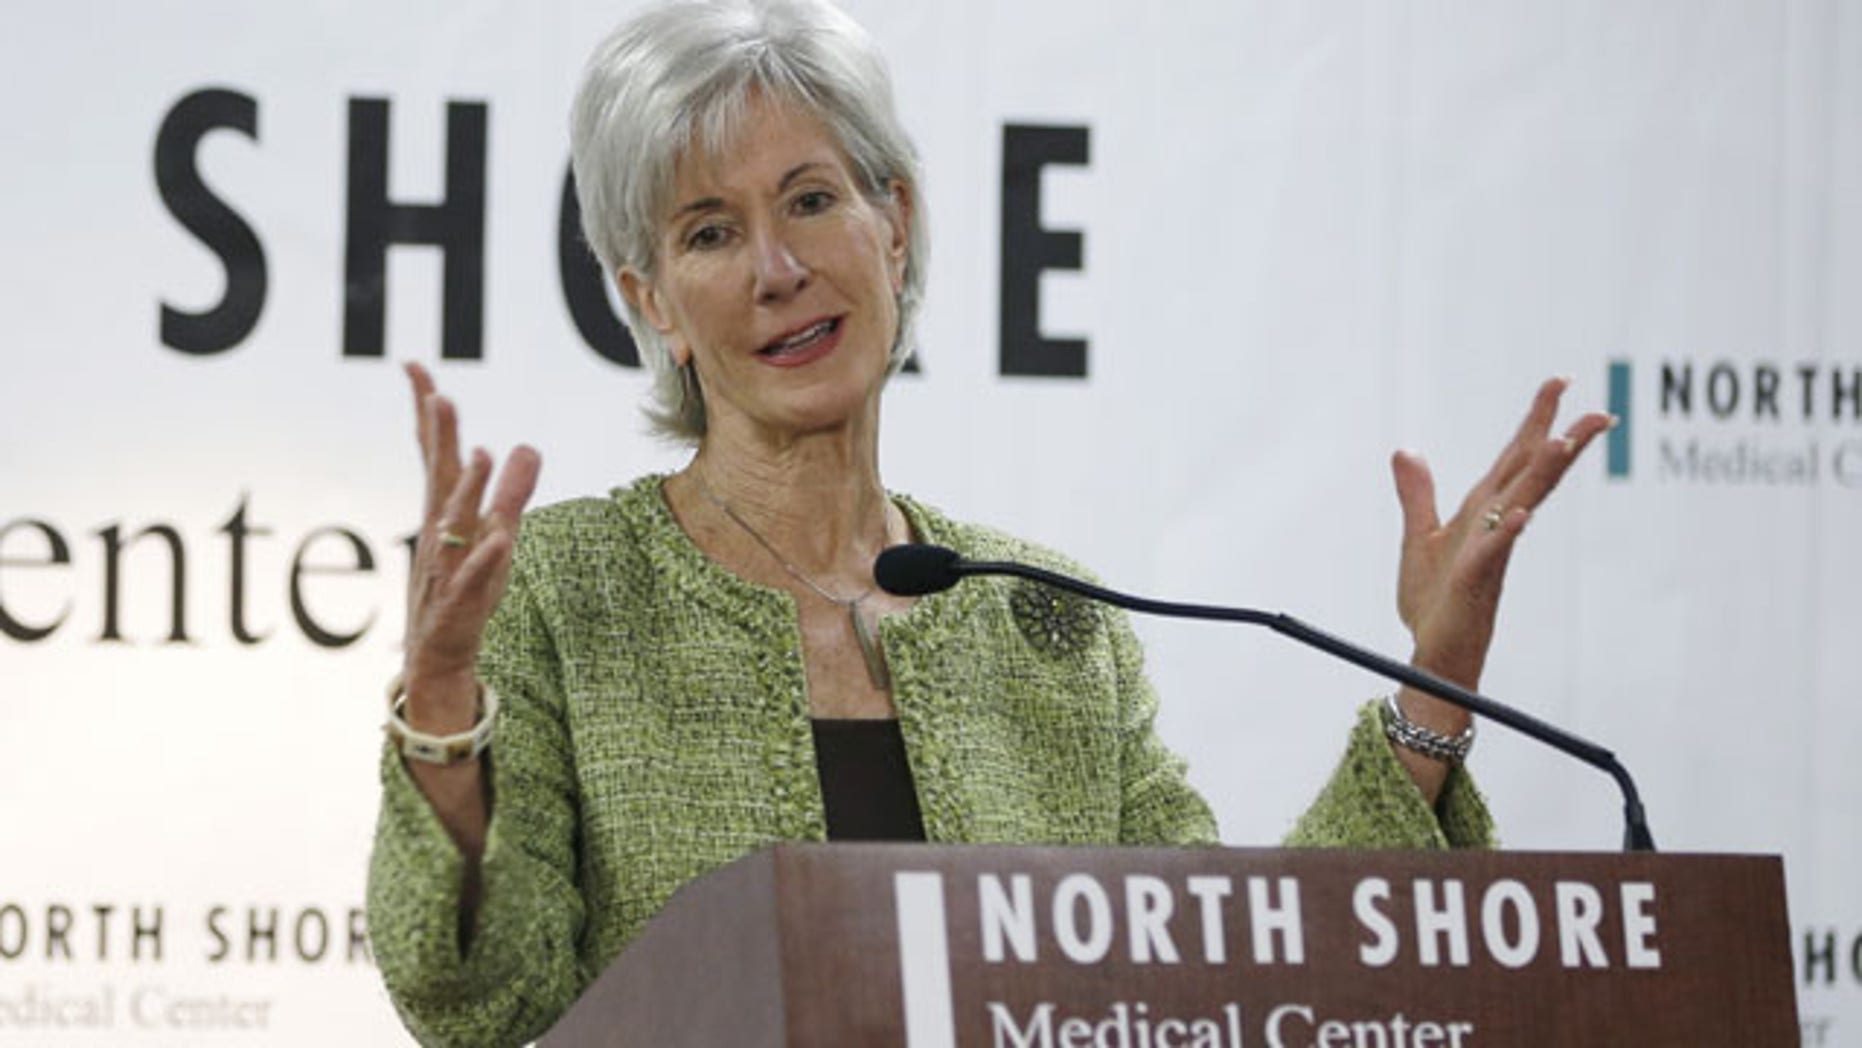 November 19, 2013: Department of Health and Human Services Secretary Kathleen Sebelius responds to questions during a news conference at the North Shore Medical Center in Miami. (AP Photo)